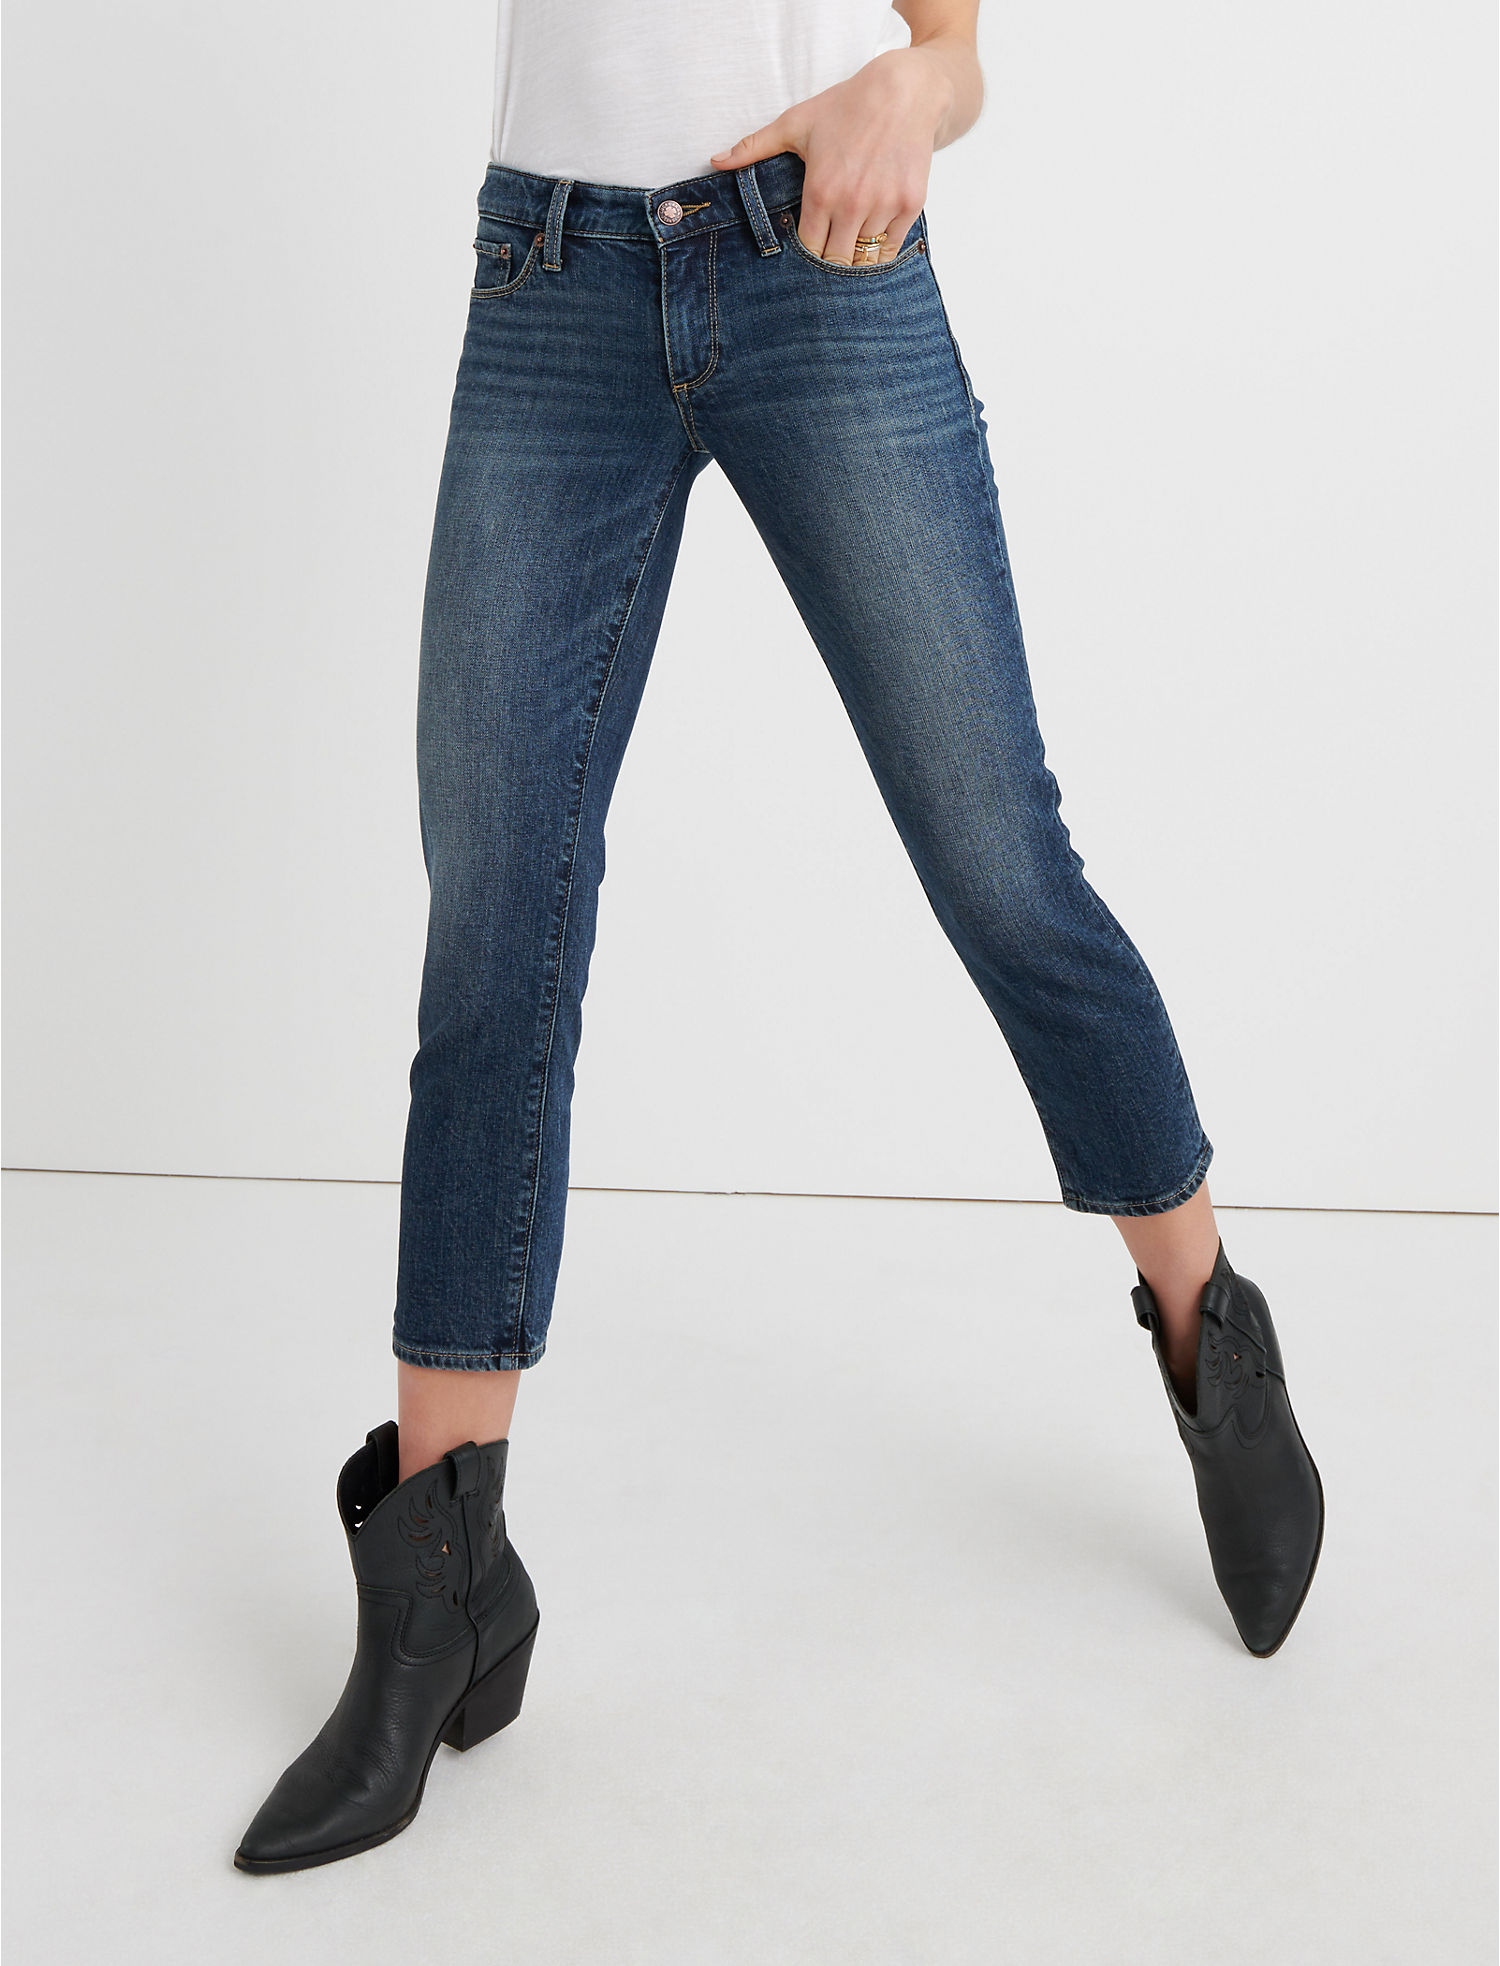 Sweet Mid Rise Crop Jean In Timber Lakes | Tuggl